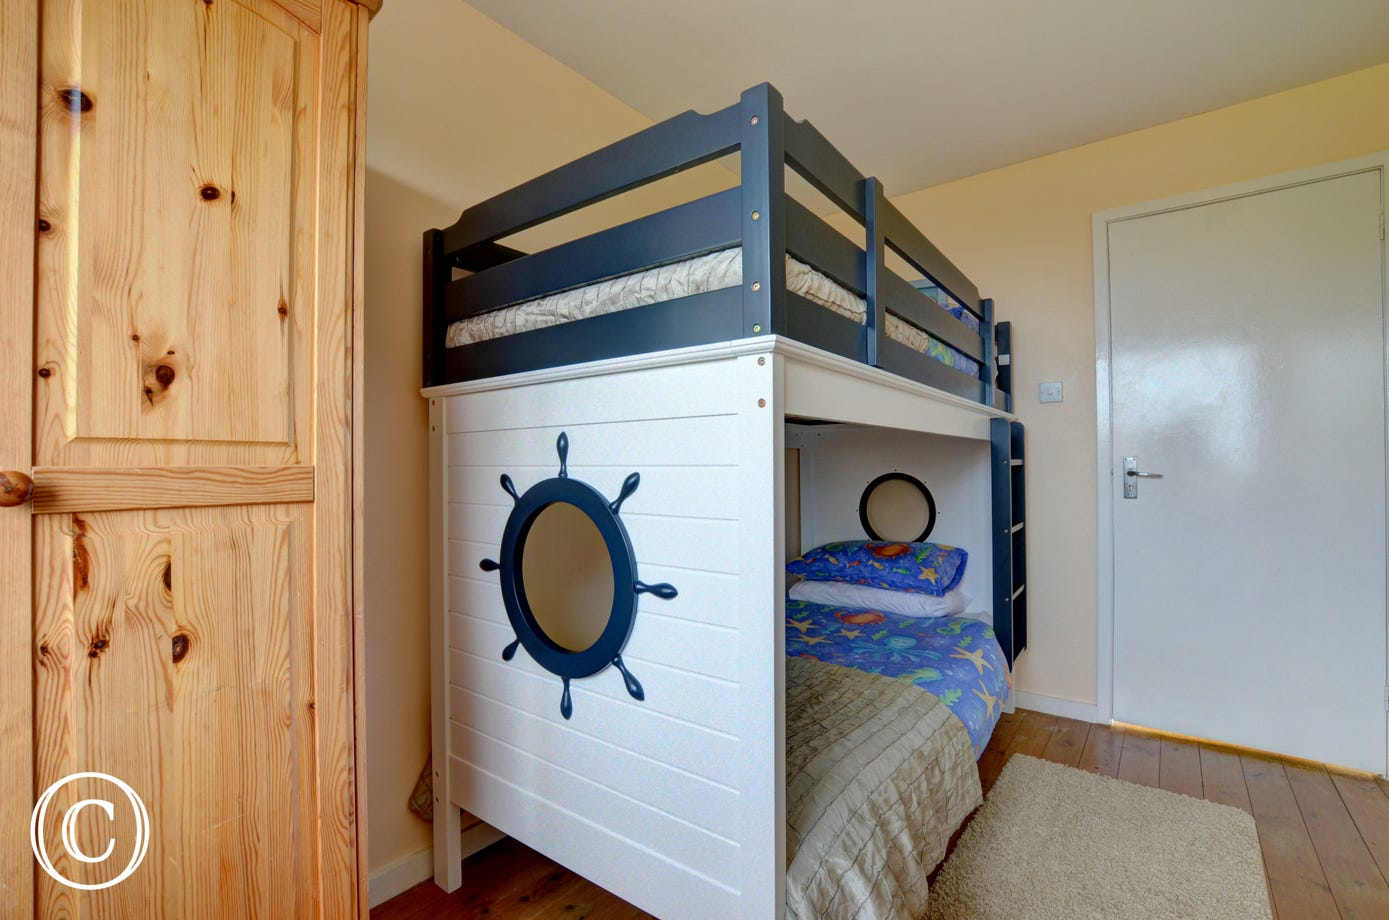 Nautical style bunk beds that the children are sure to love!